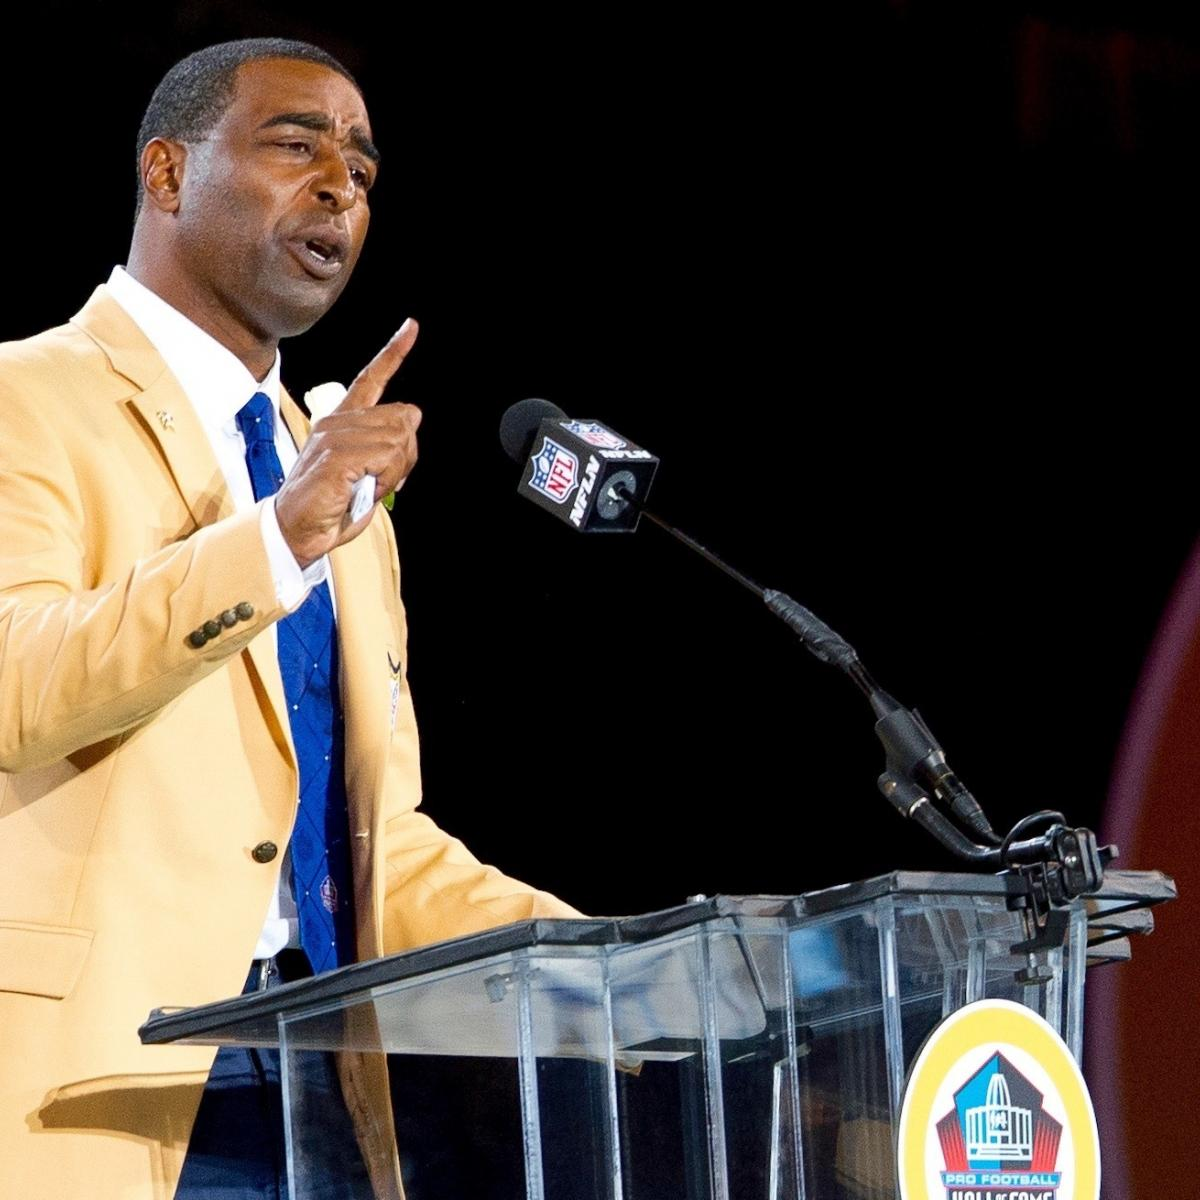 Cricket Rookie Wants To Keep It Simple: Cris Carter Told NFL Rookies To Get 'Fall Guy' For